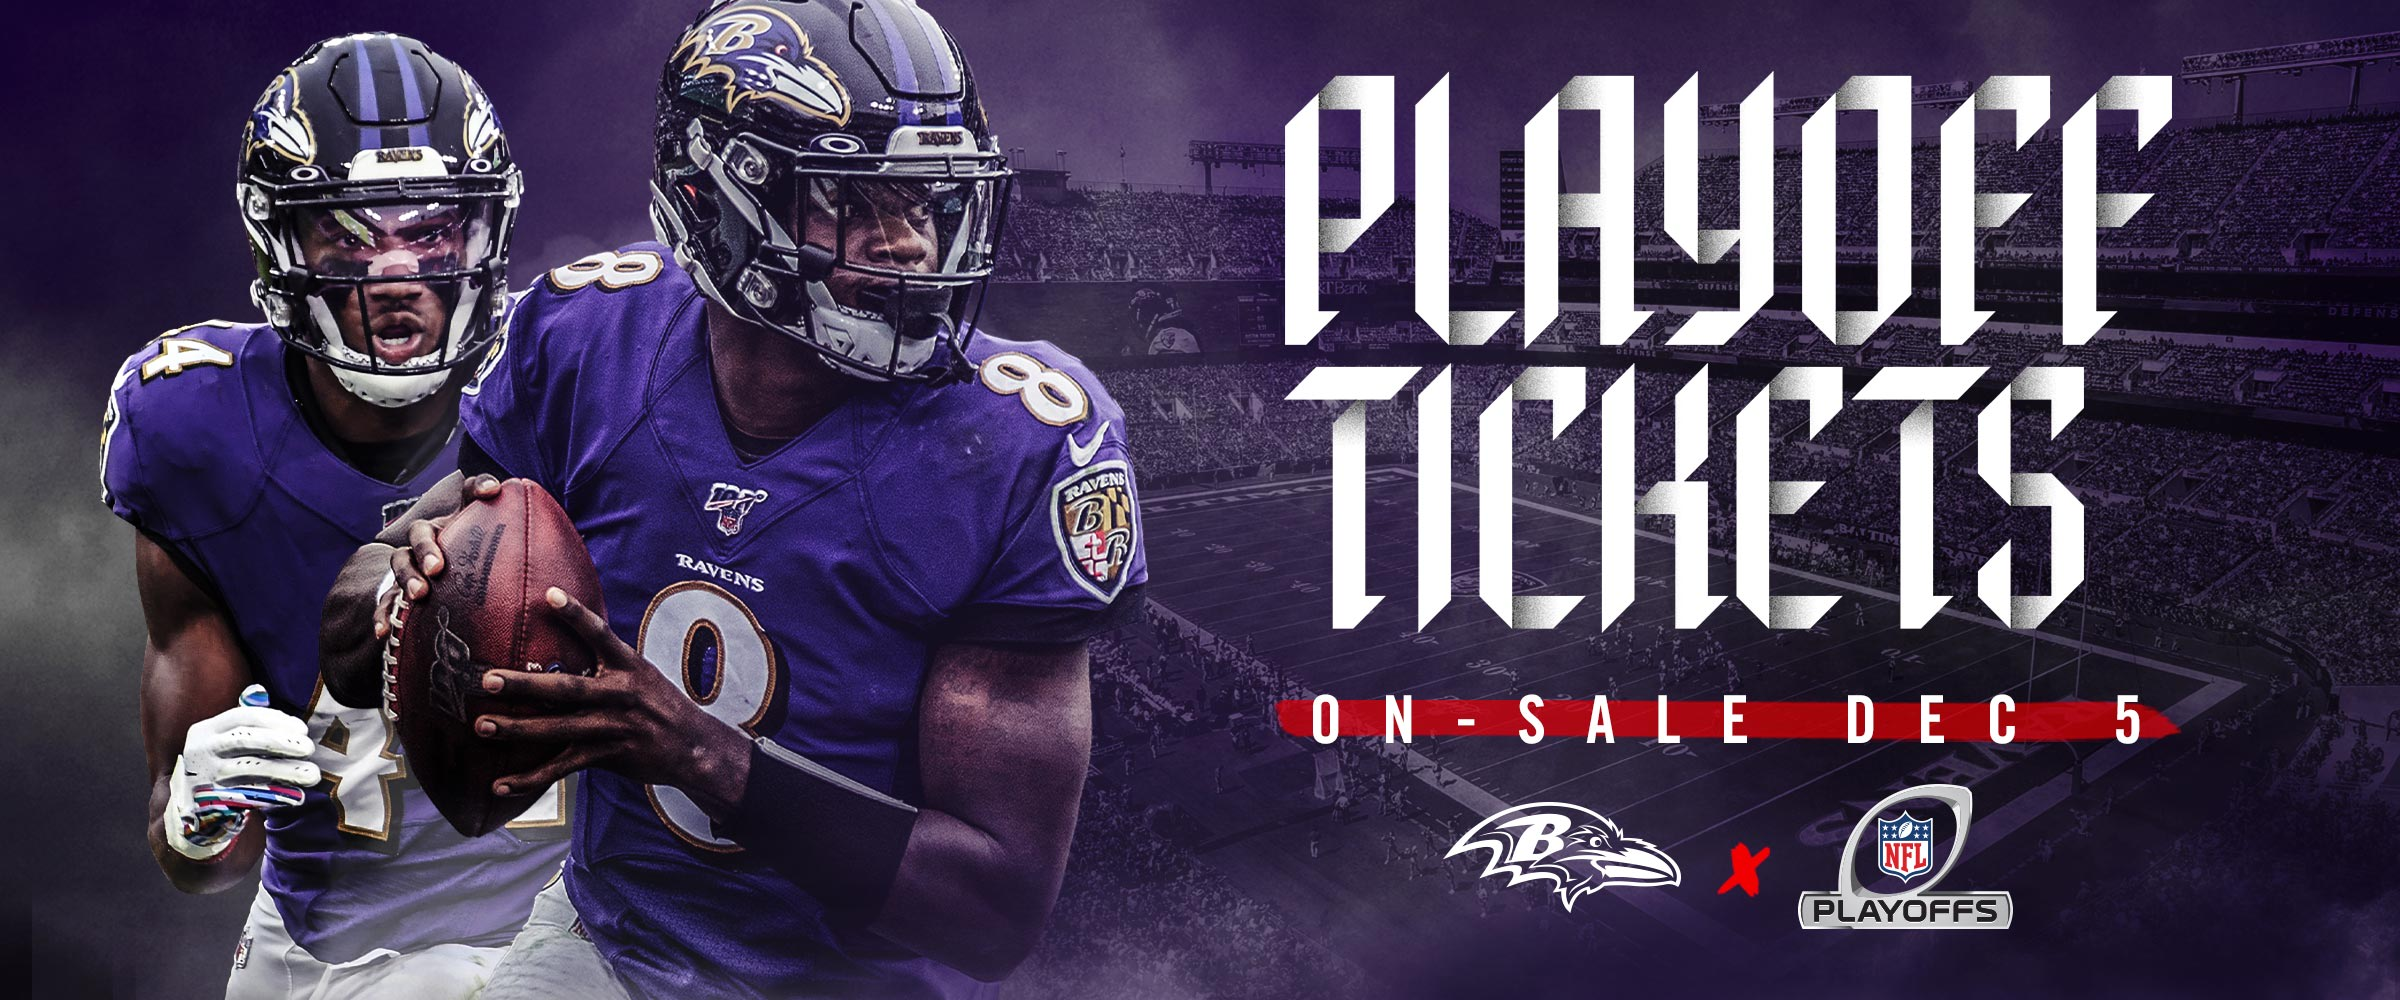 Playoff Tickets